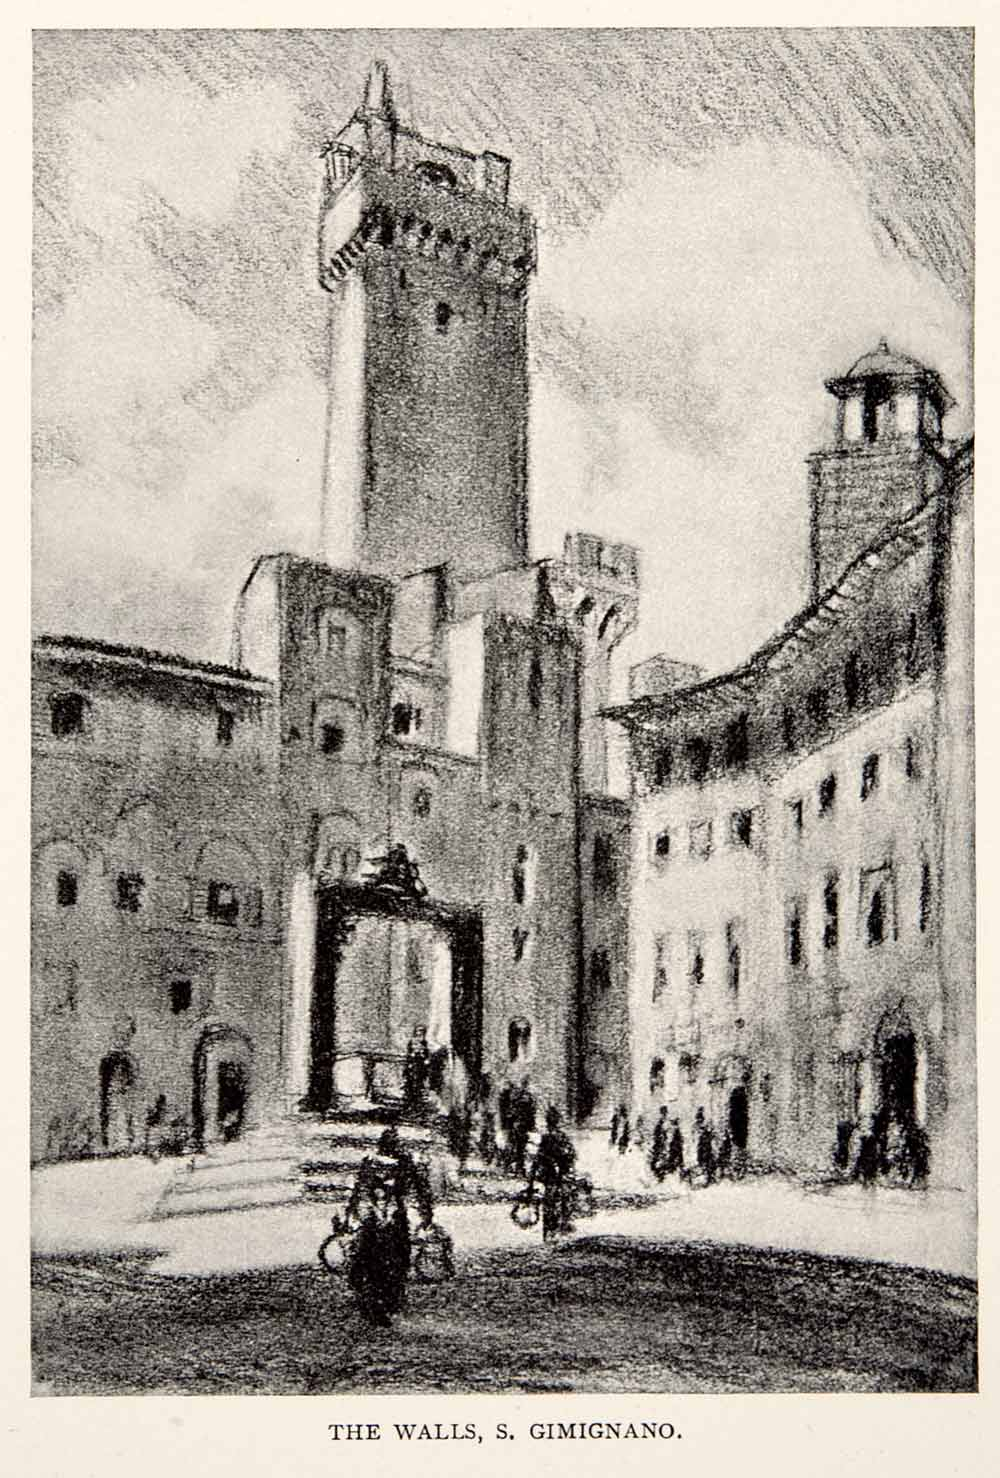 1904 Print San Gimignano Medieval Town Walls Tower Tuscany Joseph Pennell XGWA4